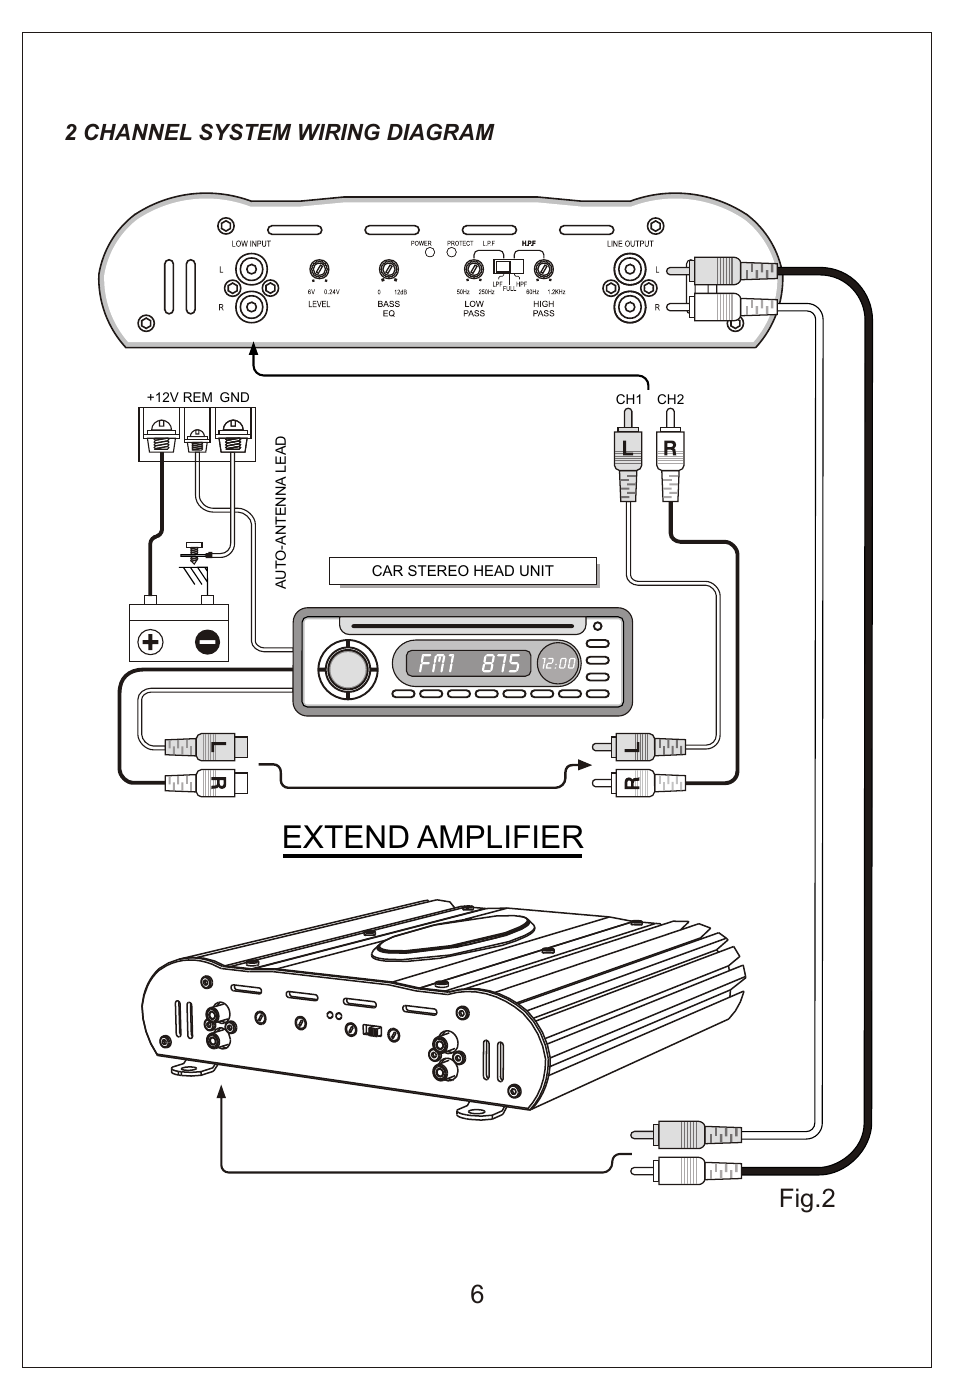 Extend Amplifier Fig2 2 Channel System Wiring Diagram Bassworx Car Ba1502 User Manual Page 7 16